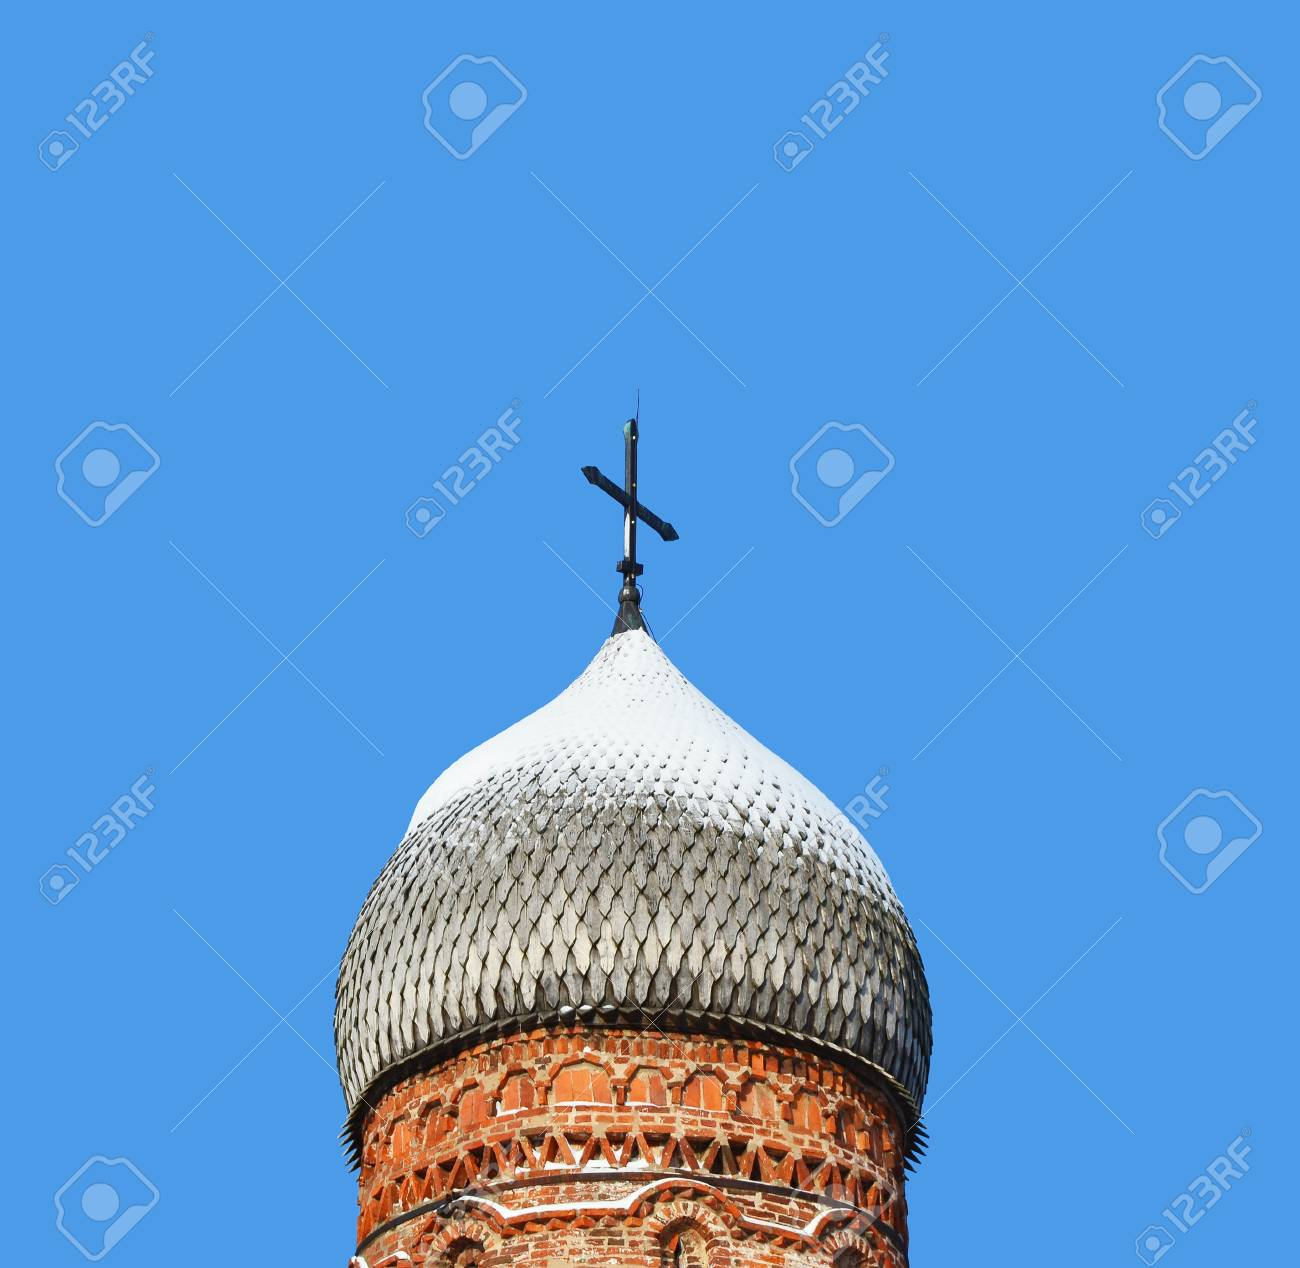 Old wooden dome of church on blue sky background in Novgorod Russia Stock Photo - 10745132